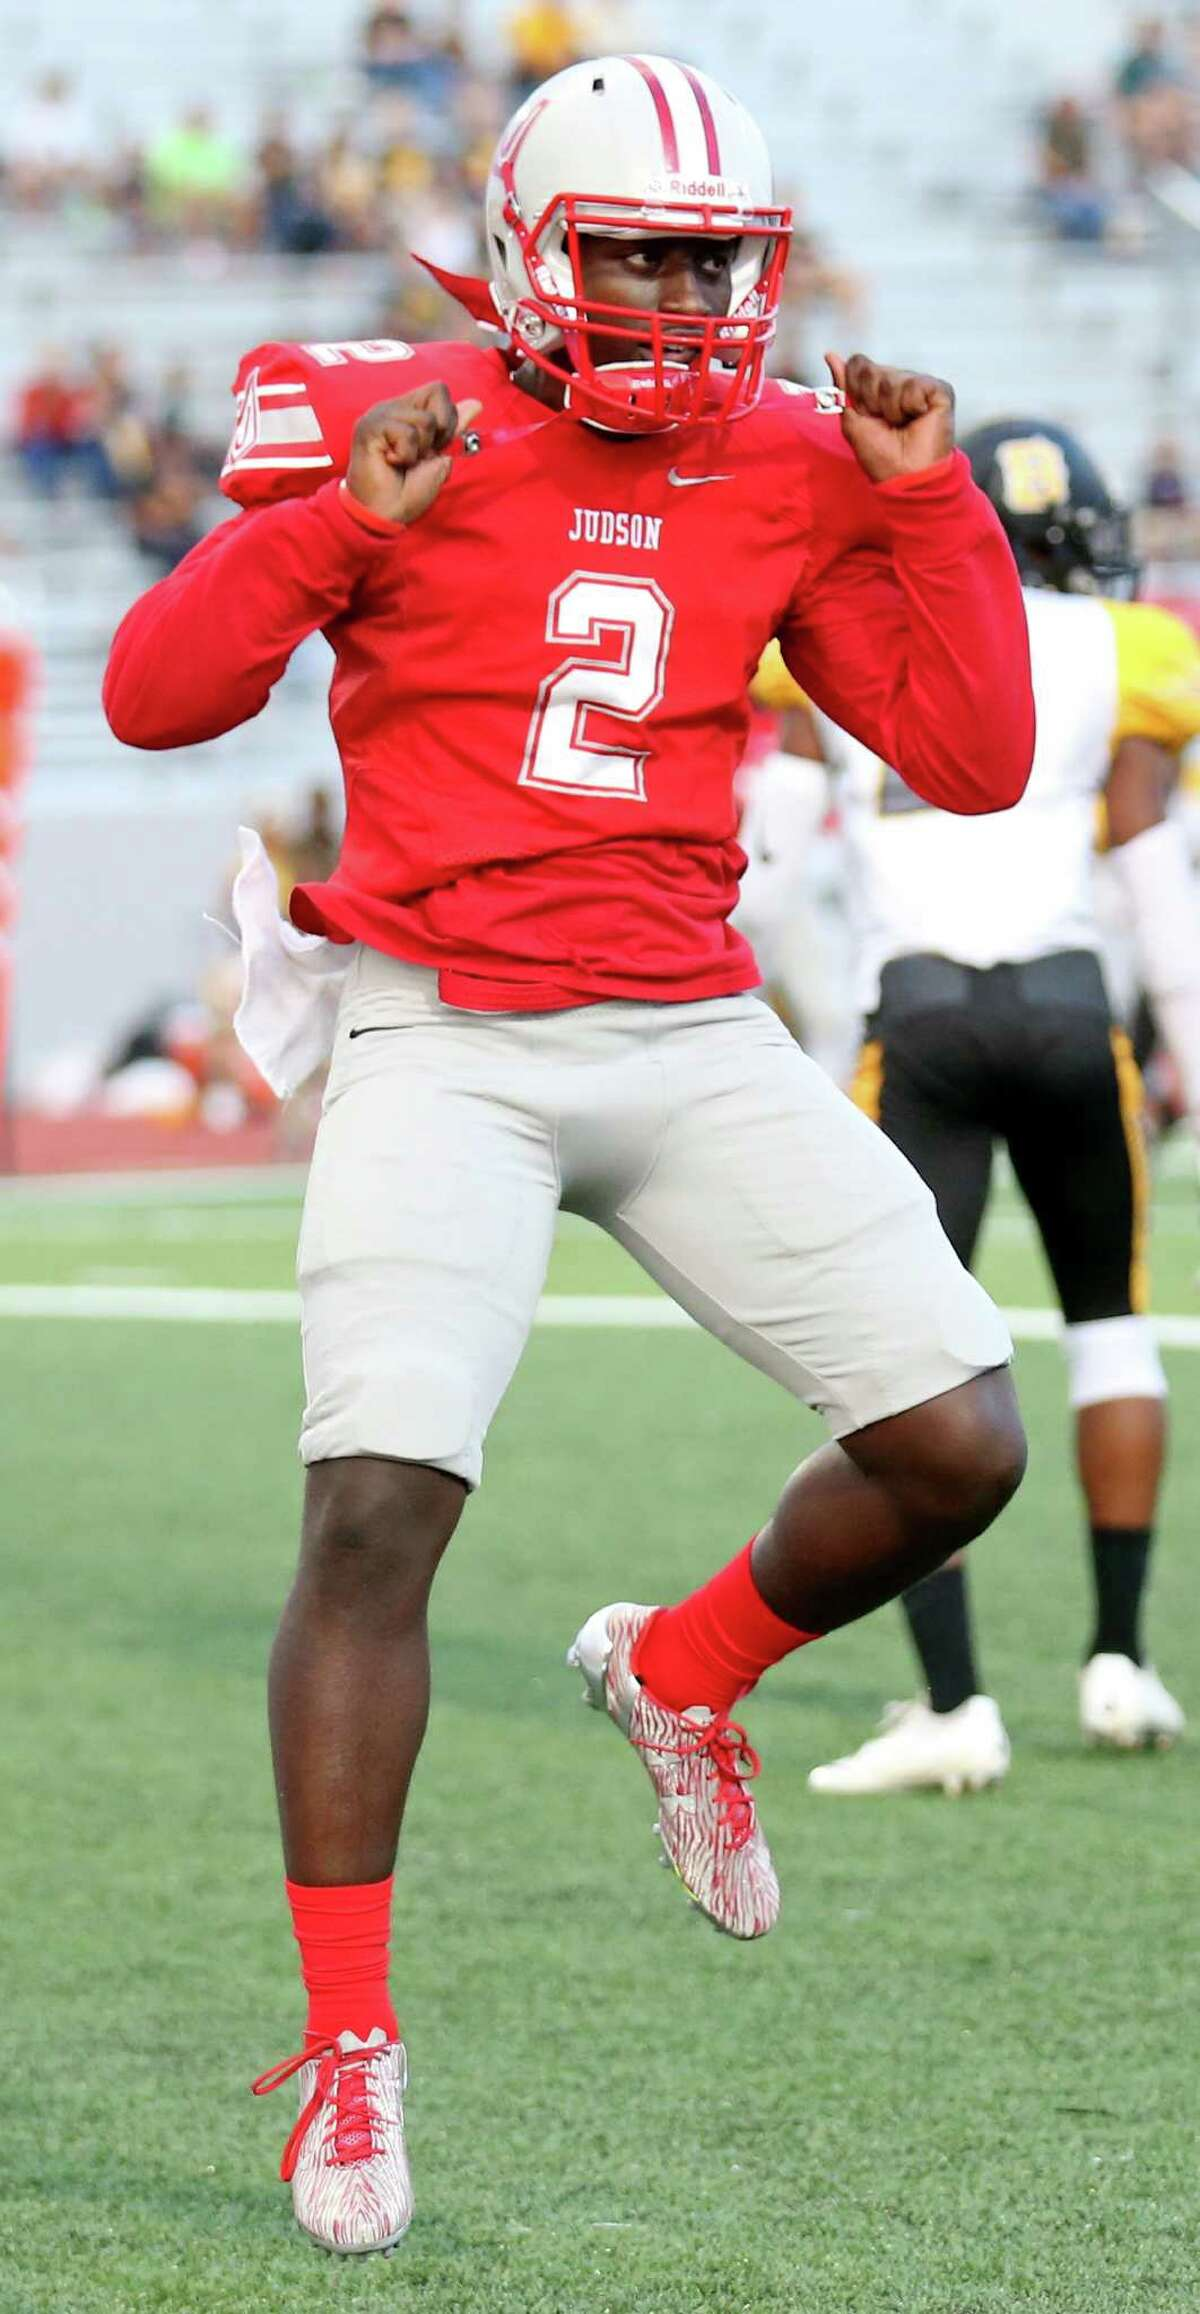 Judson's Julon Williams celebrates after scoring a touchdown against Brennan during first half action Friday Sept. 2, 2016 at Rutledge Stadium.